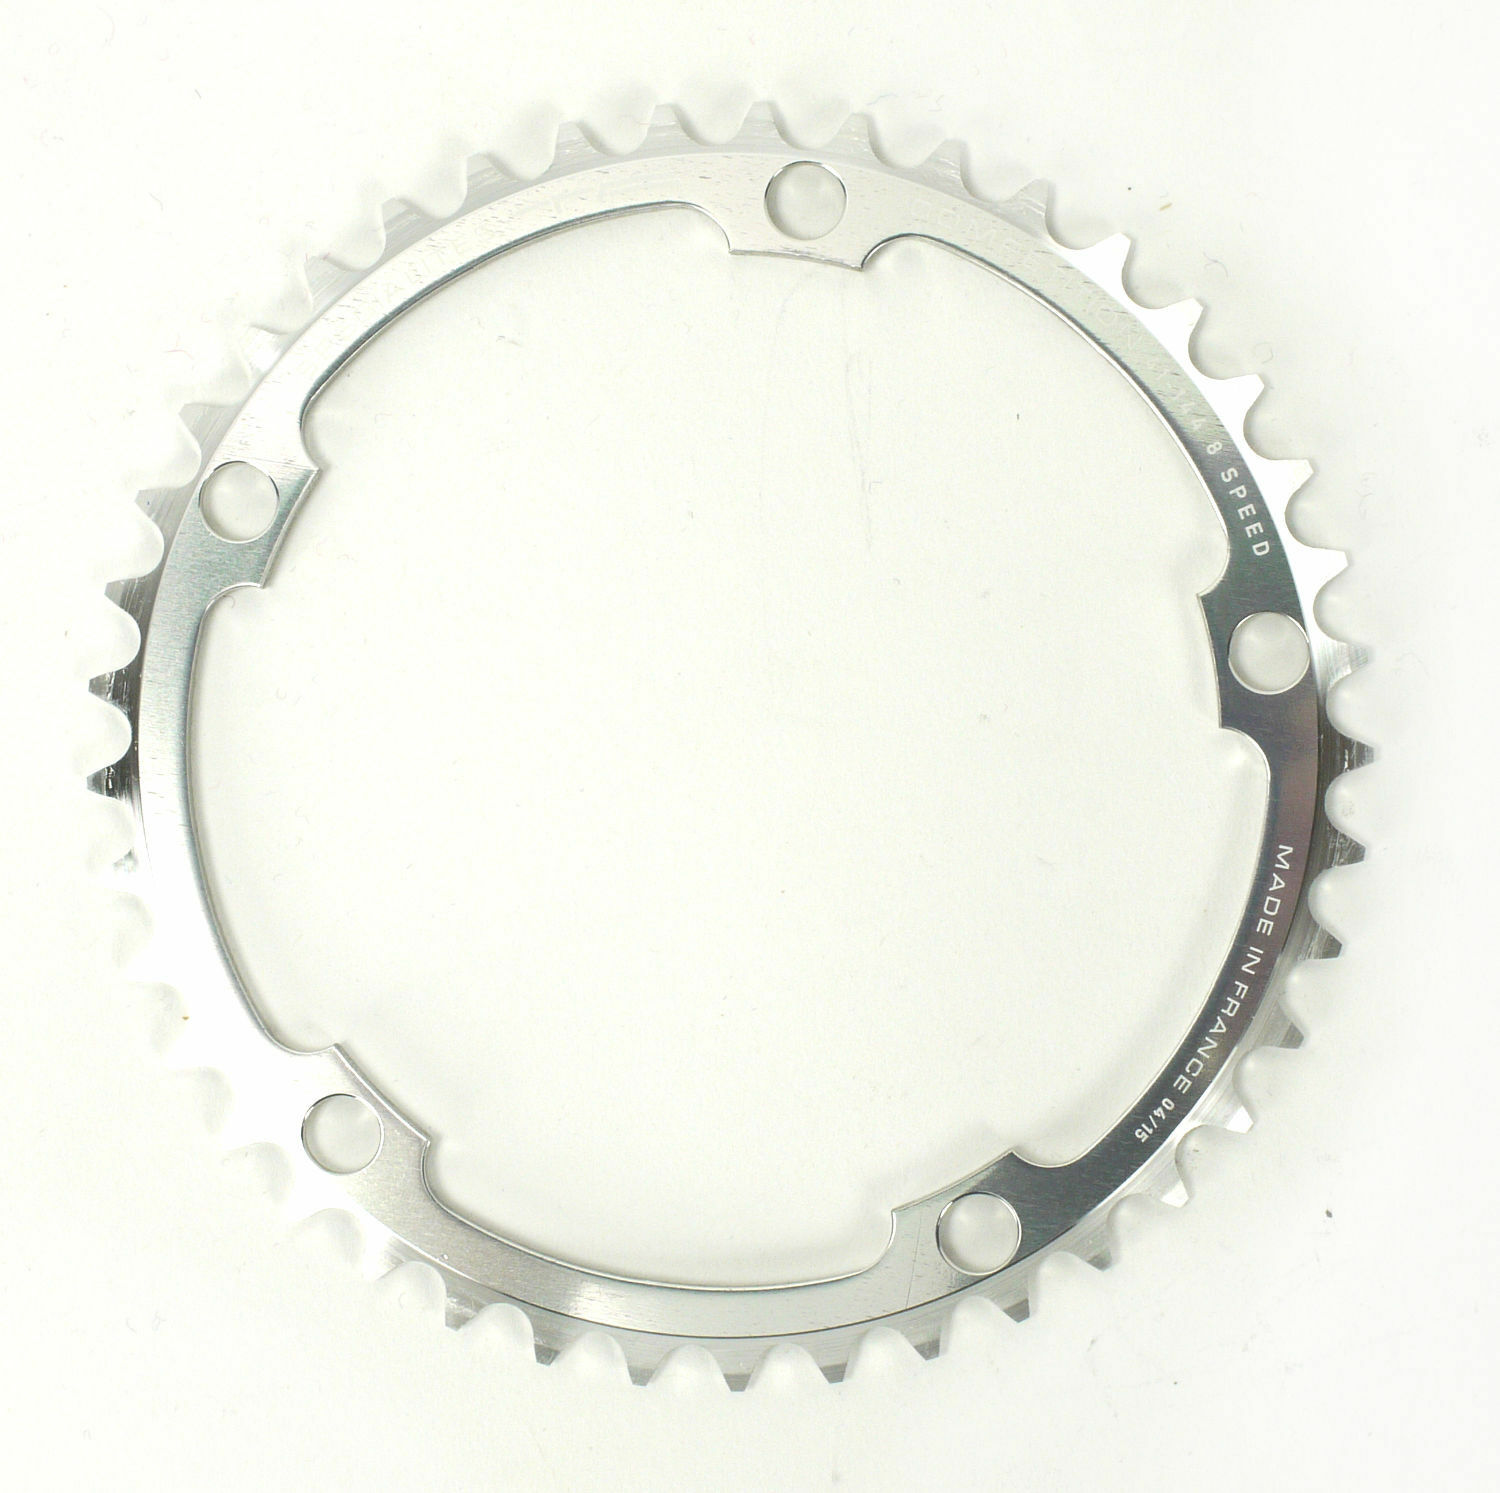 TA replacement  vintage Campagnolo inner chainring (144 BCD)  store